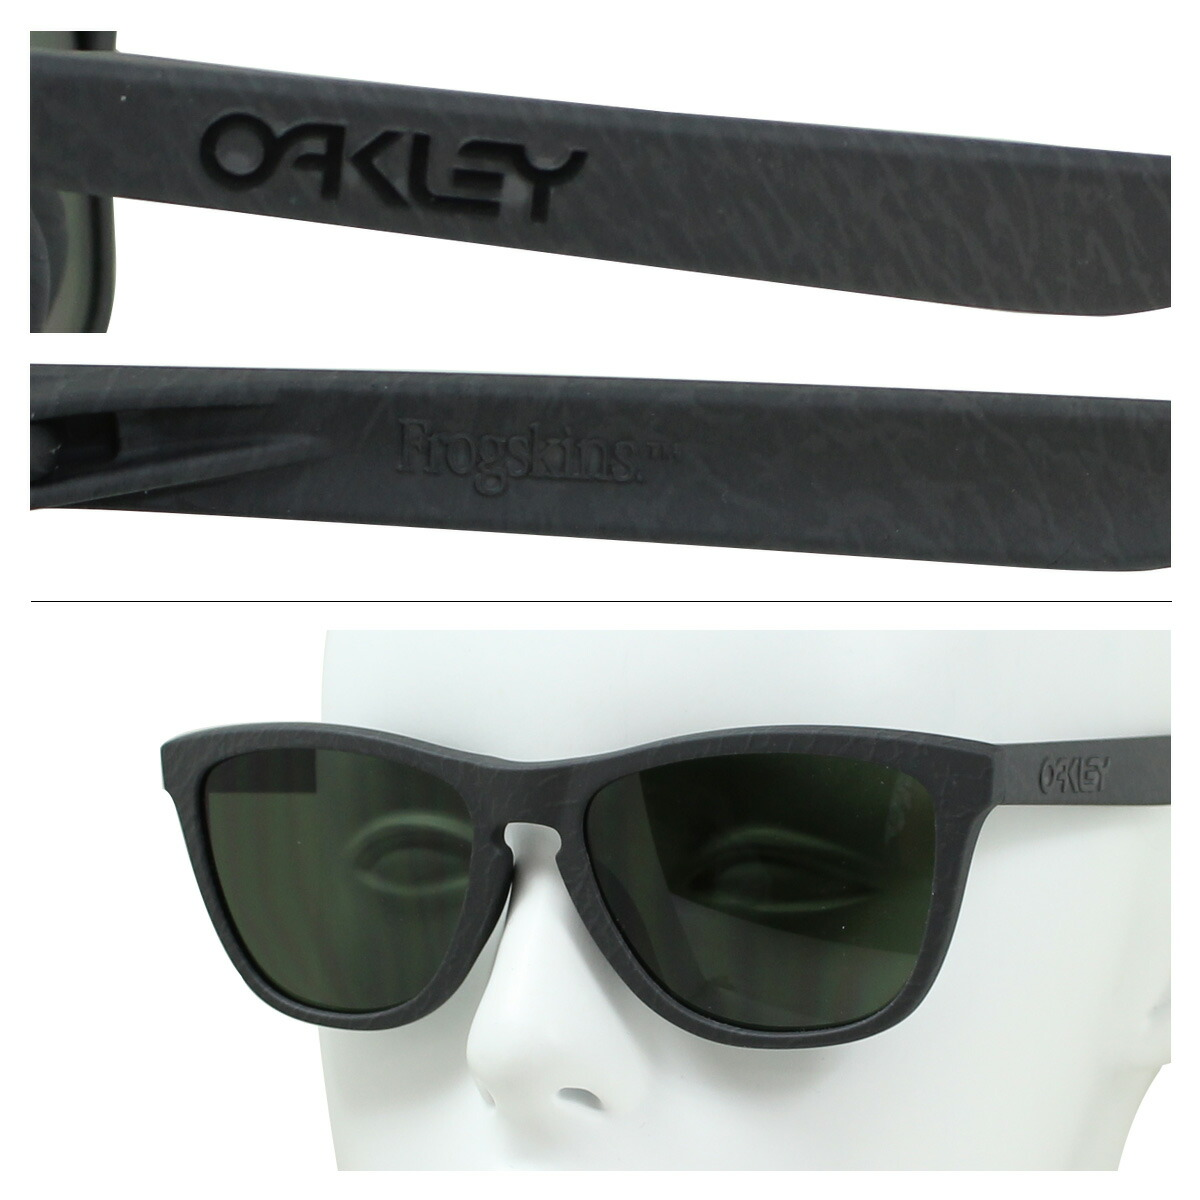 Oakley sunglasses asian fit - Product Name